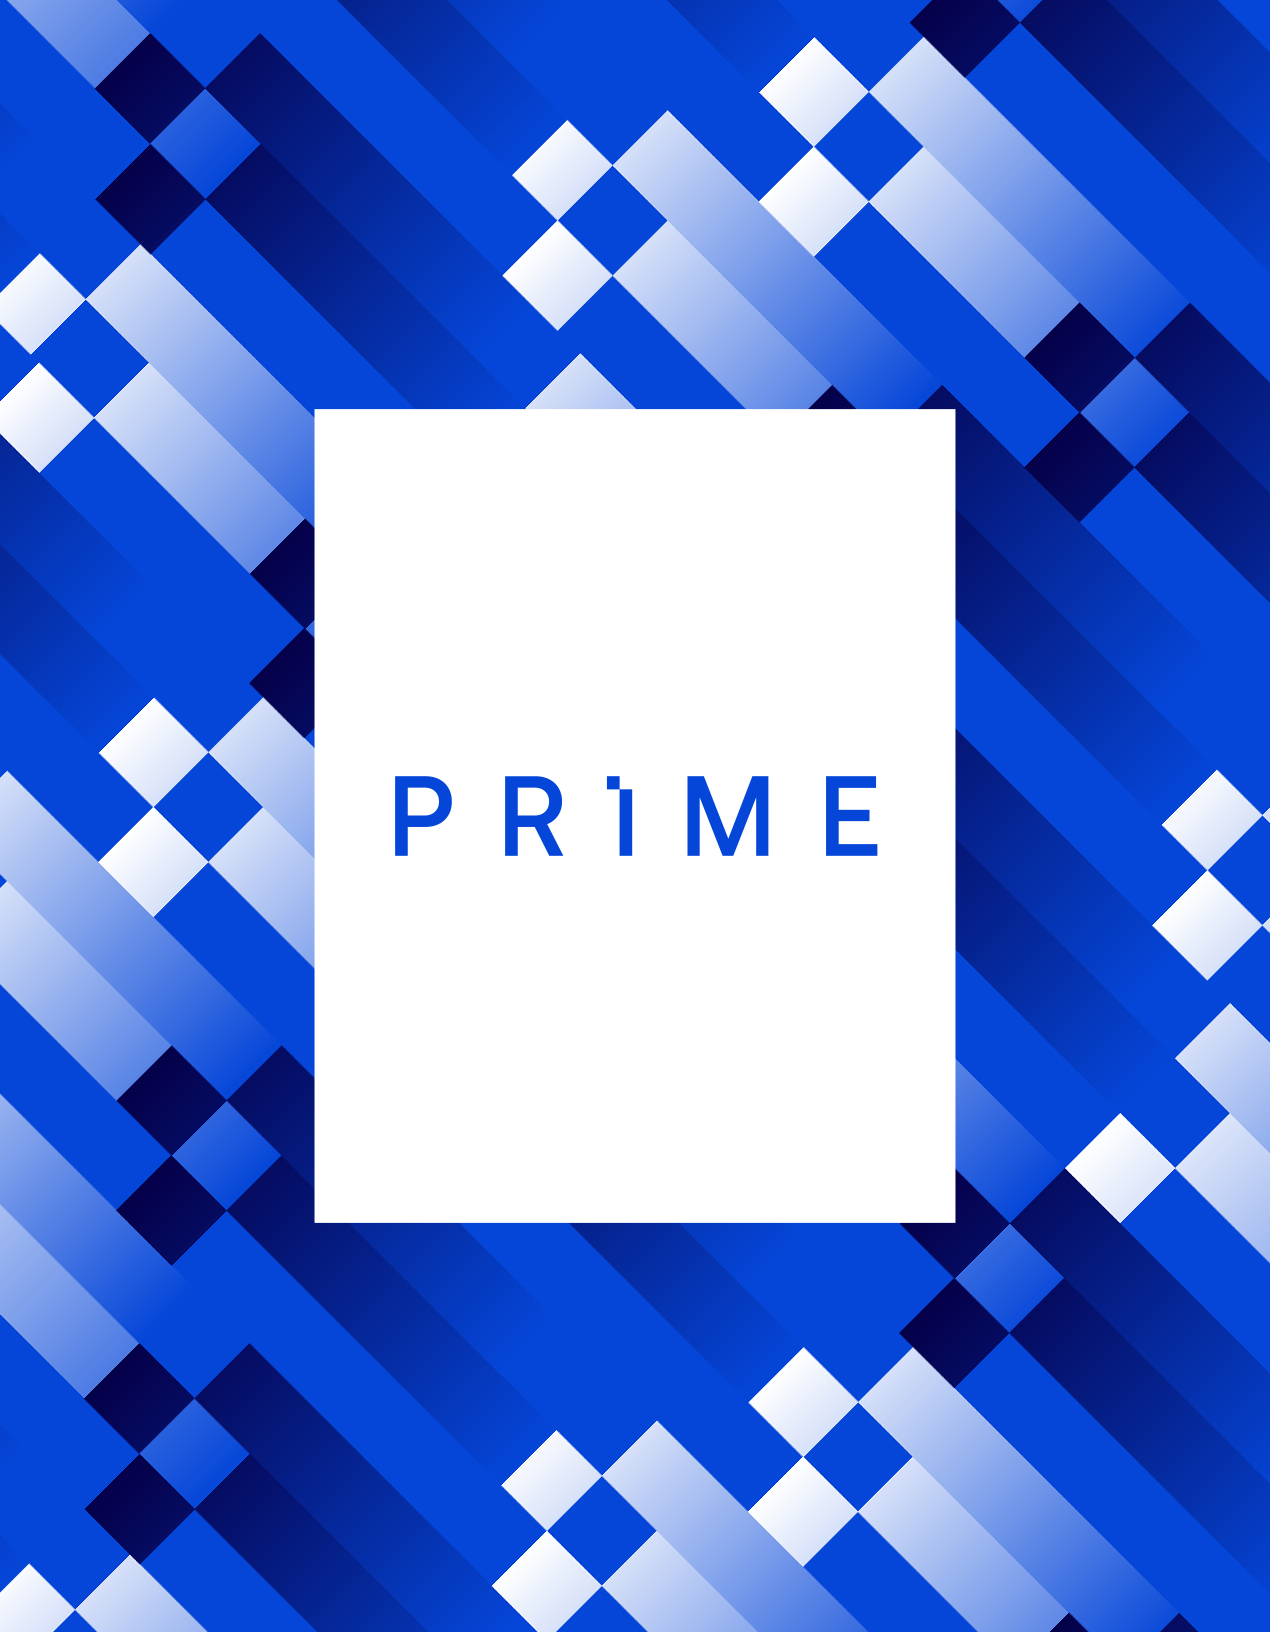 Prime. UnitedUs Brands that unite people, purpose, and potential